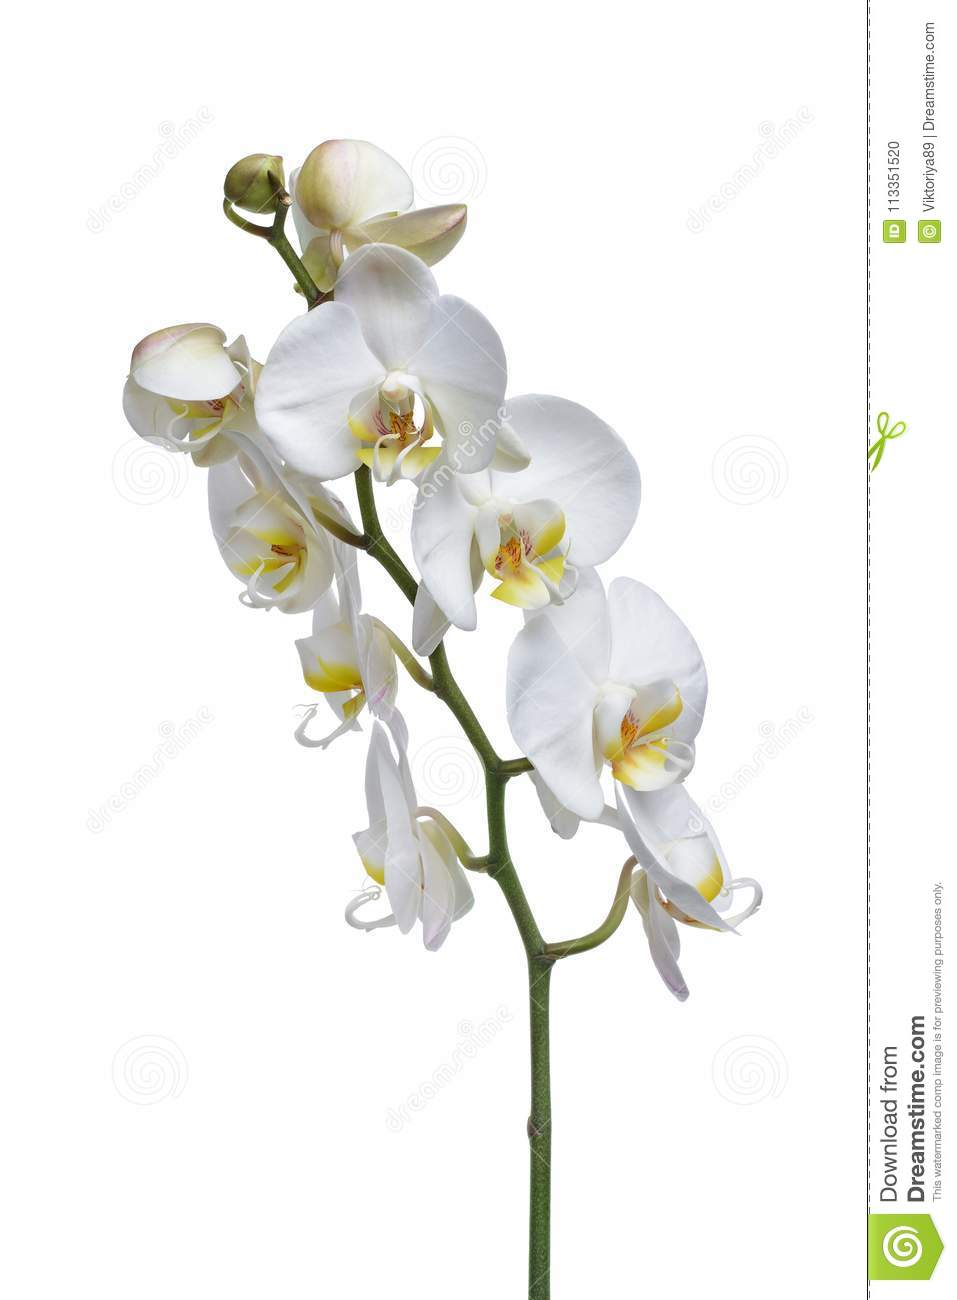 Fleur Blanche D Orchidee D Usine D Interieur Photo Stock Image Du